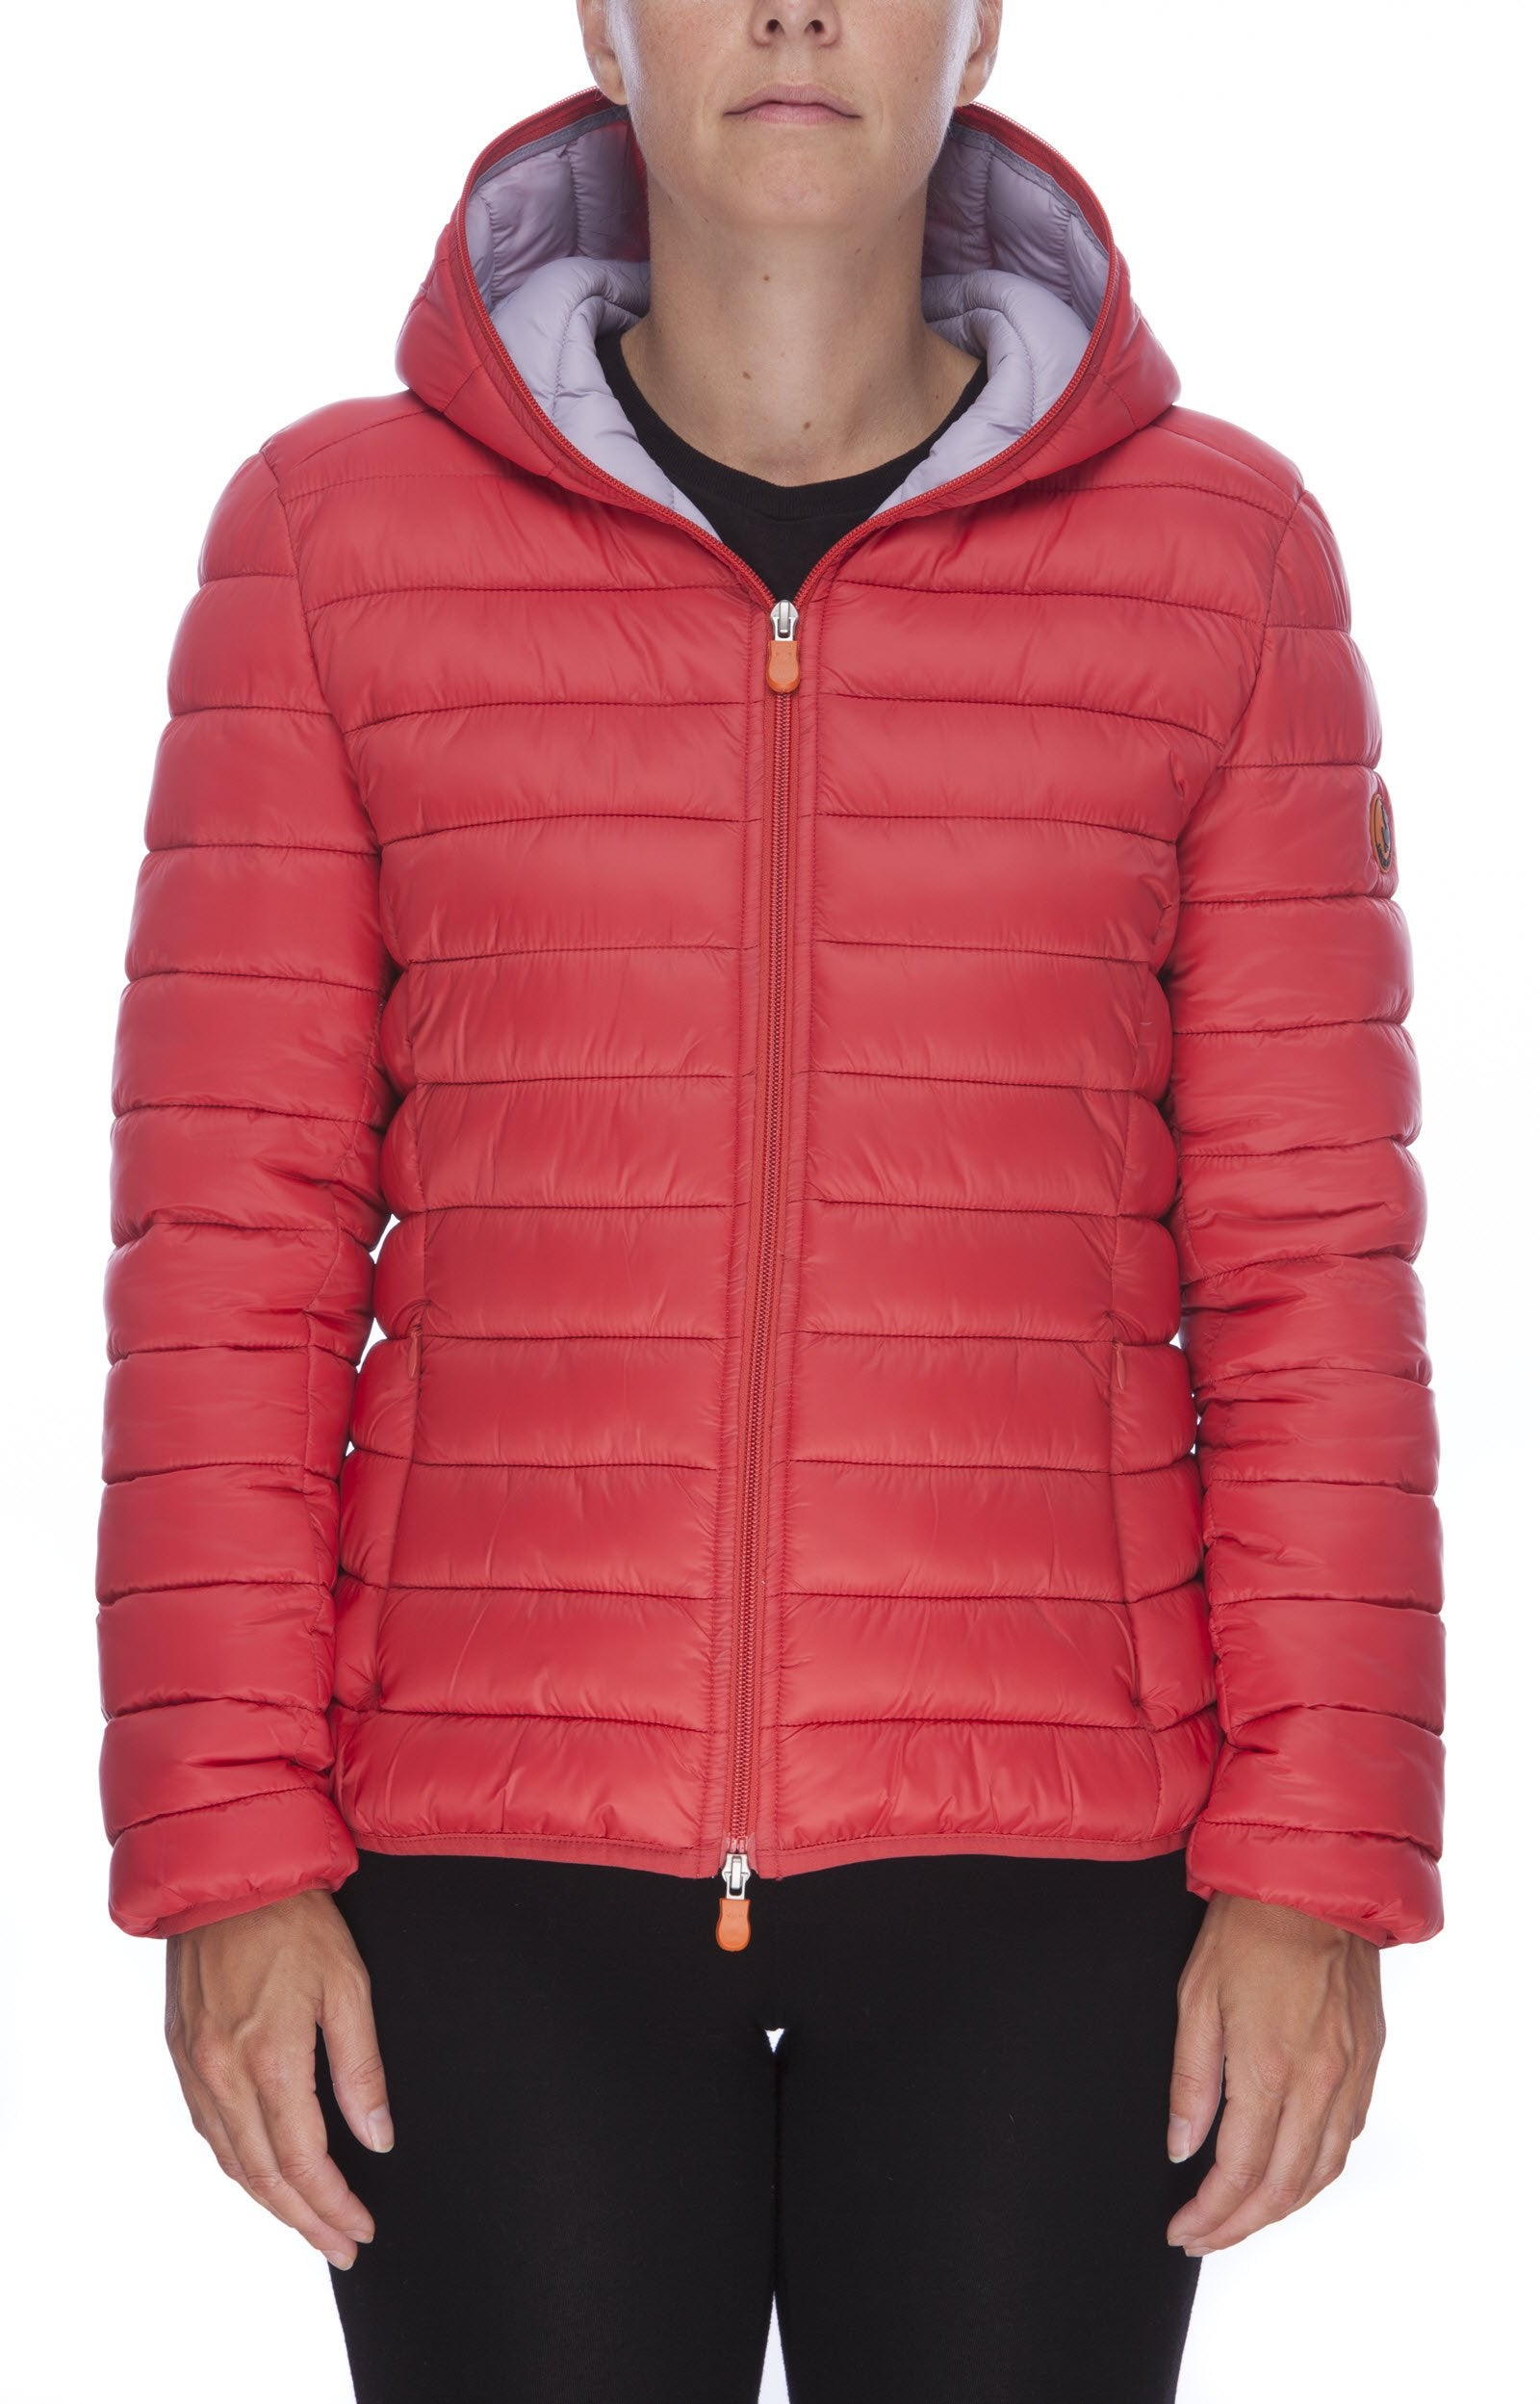 Women's GIGA Hooded Puffer Jacket in Cranberry Red